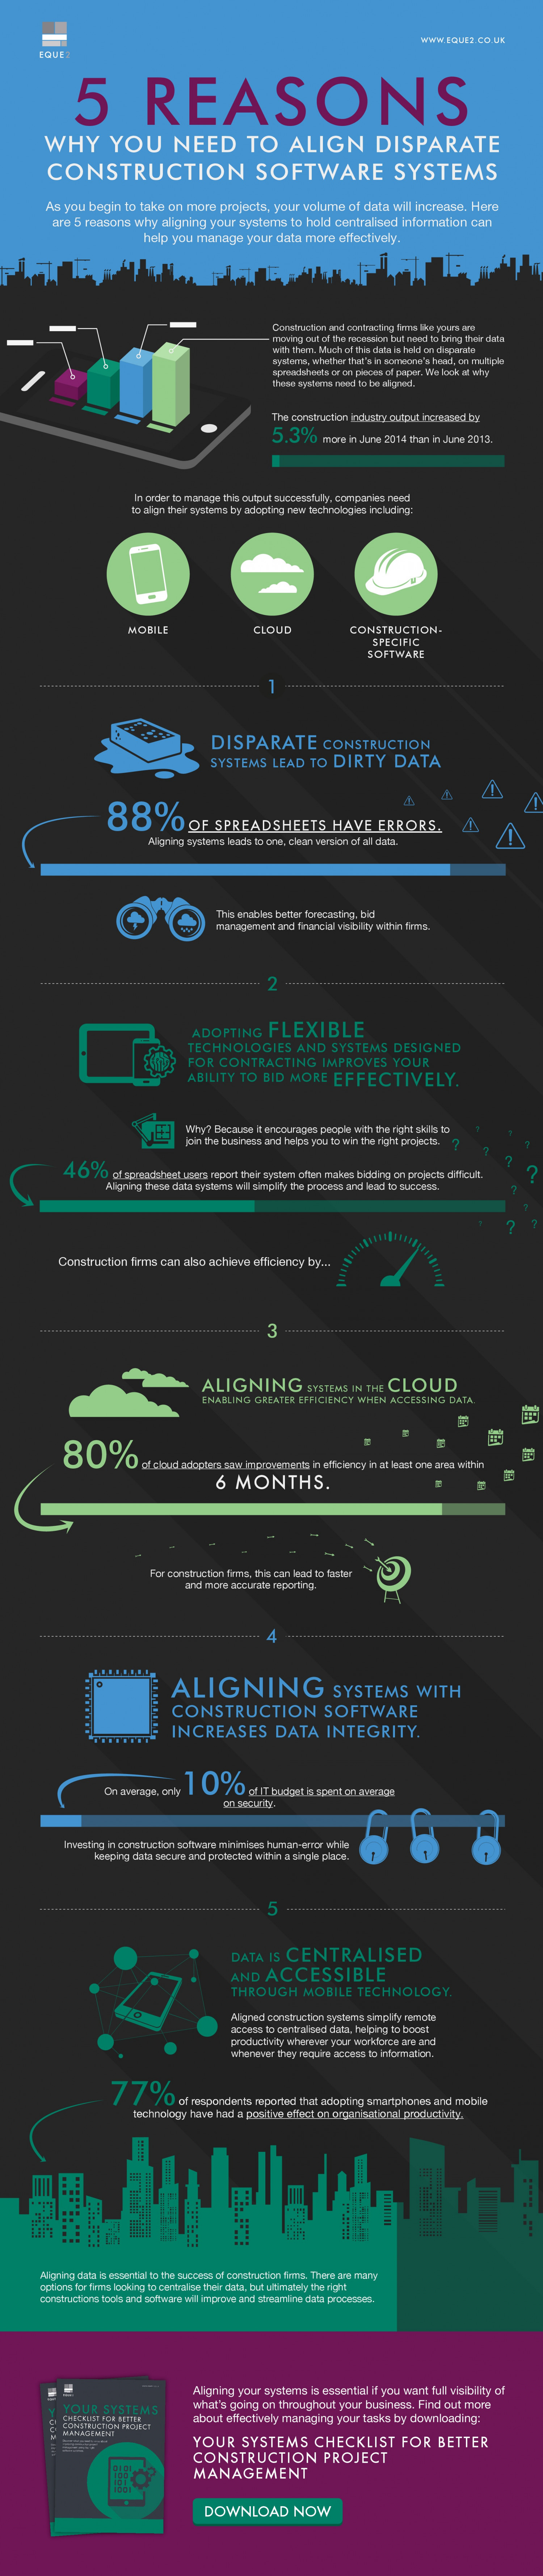 5 Reasons Why You Need to Align Disparate Construction Software Systems Infographic